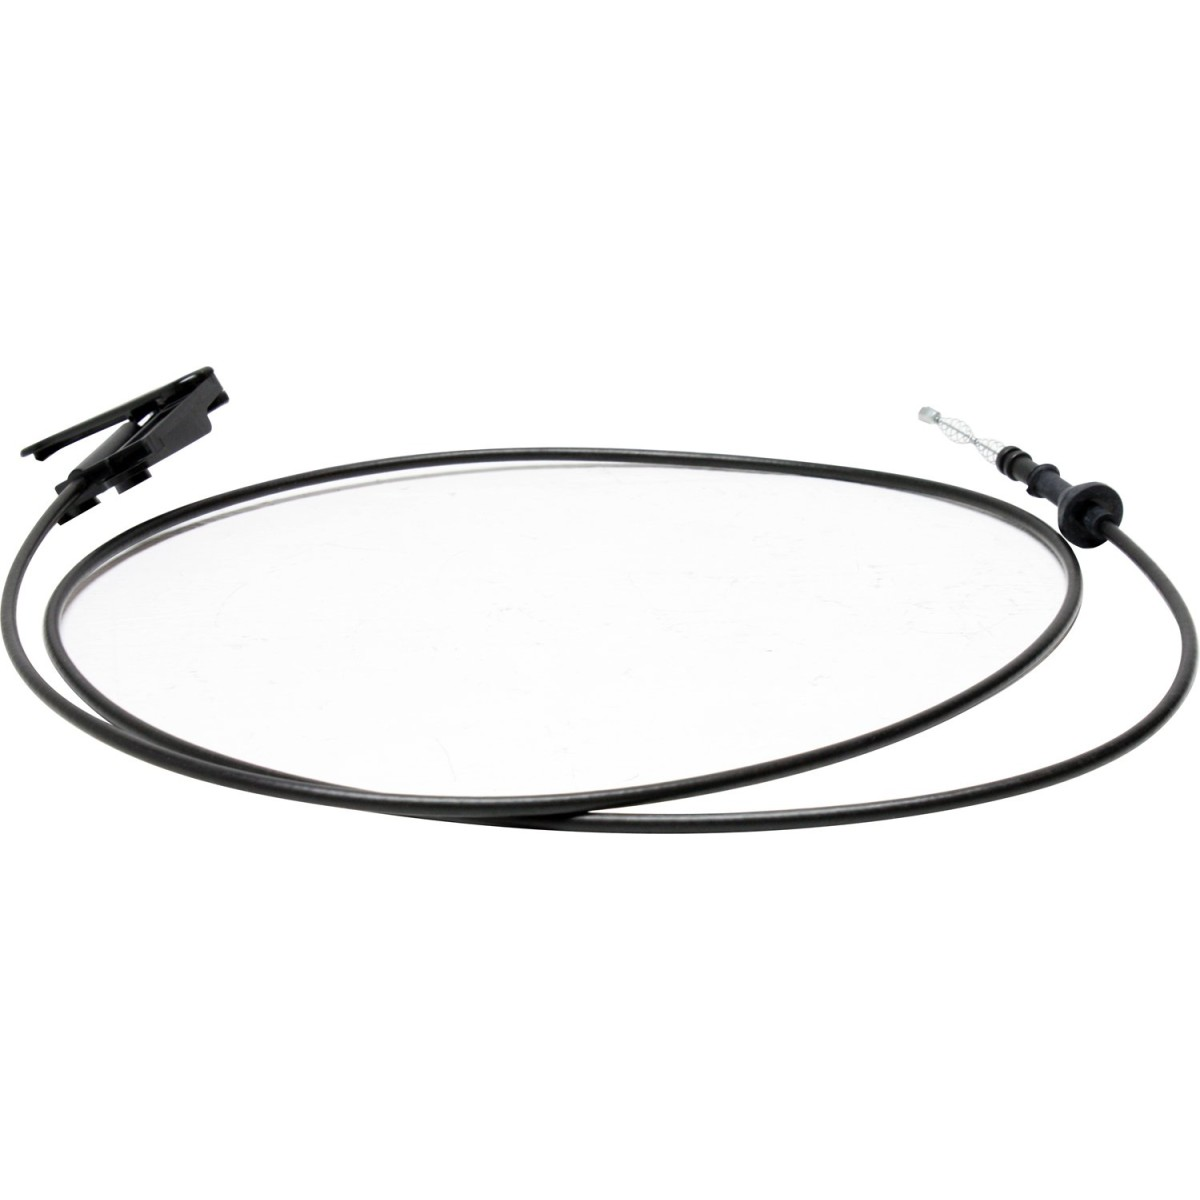 912 001 Dorman Hood Cable New For Chevy Olds S10 Pickup